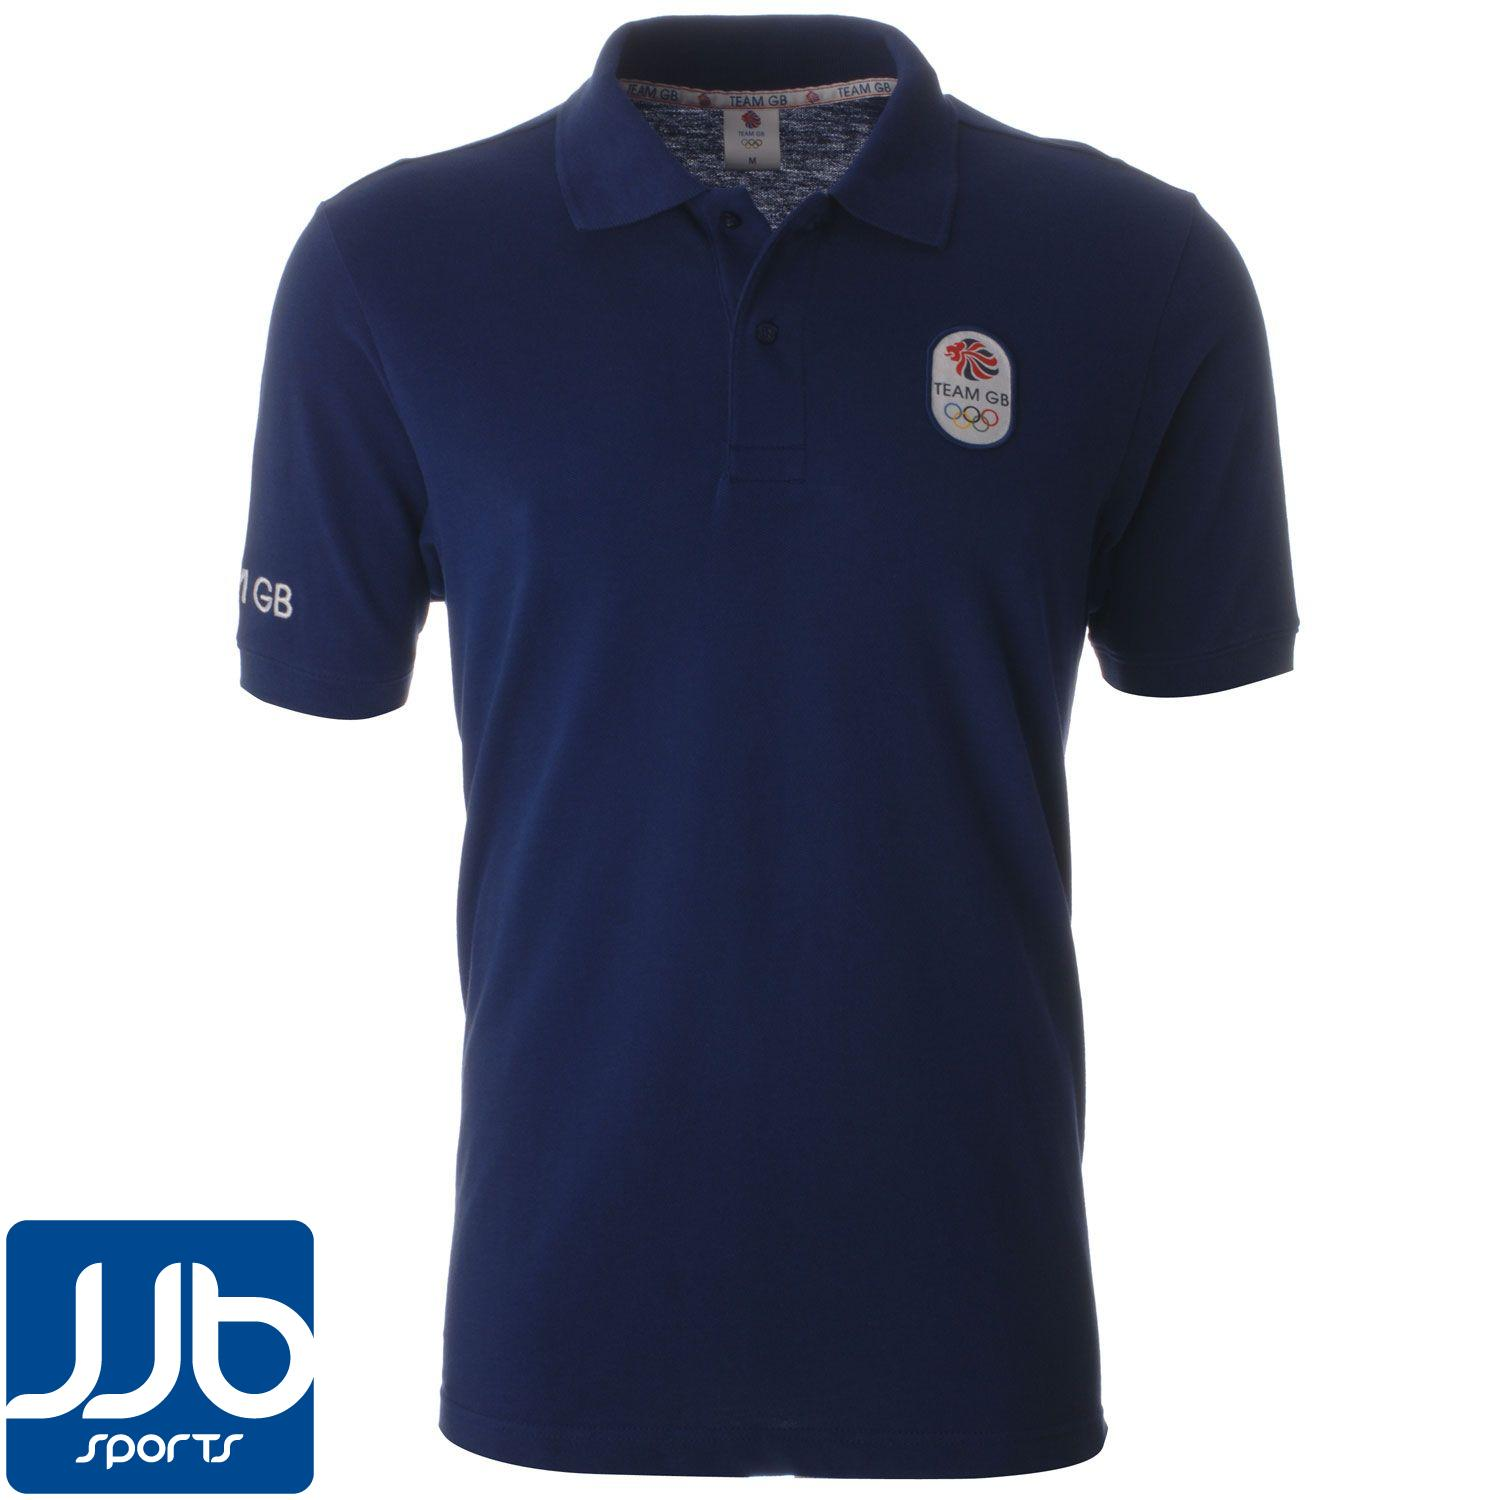 London-2012-Team-GB-Mens-Polo-Shirt